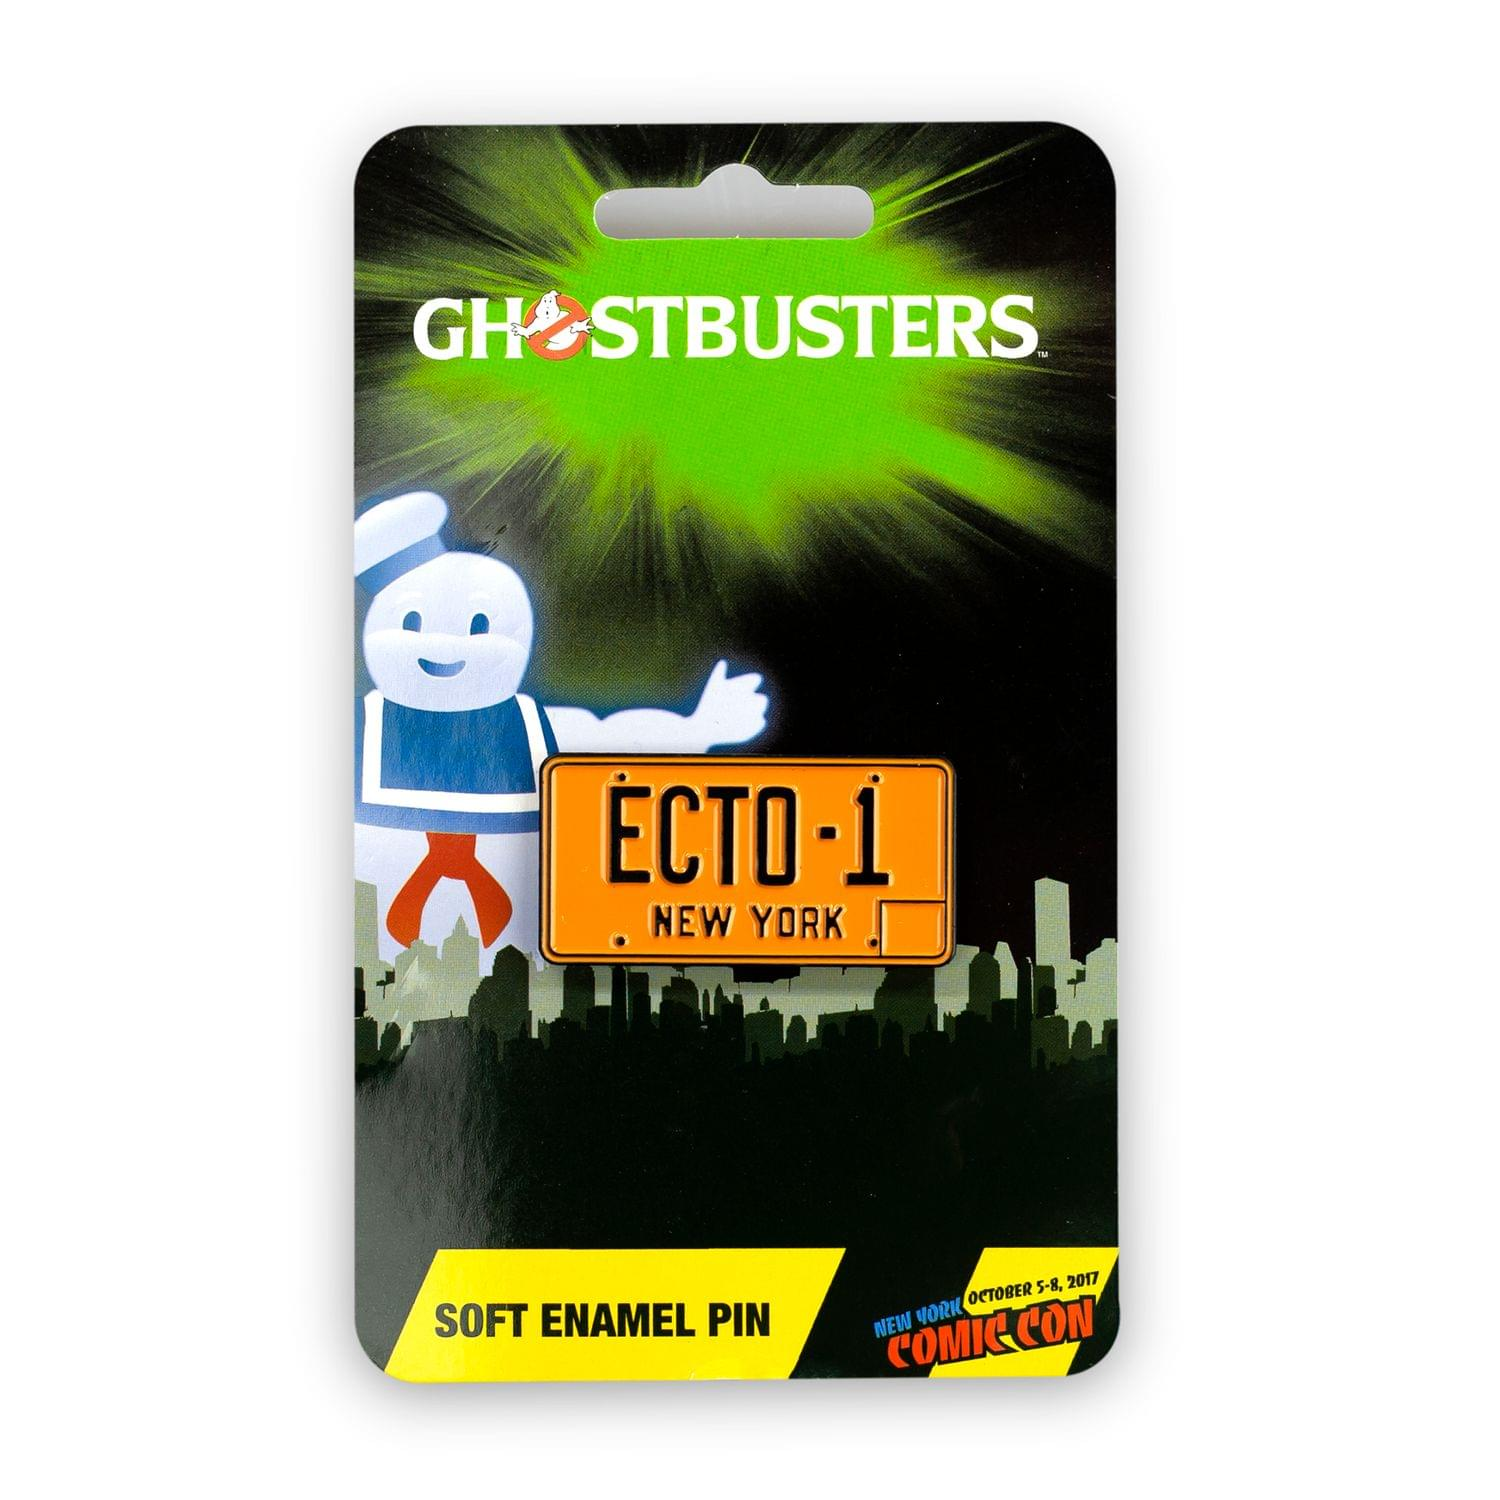 Ghostbusters Exclusive Ecto-1 License Plate Pin | Perfect For Ghostbuster Fans